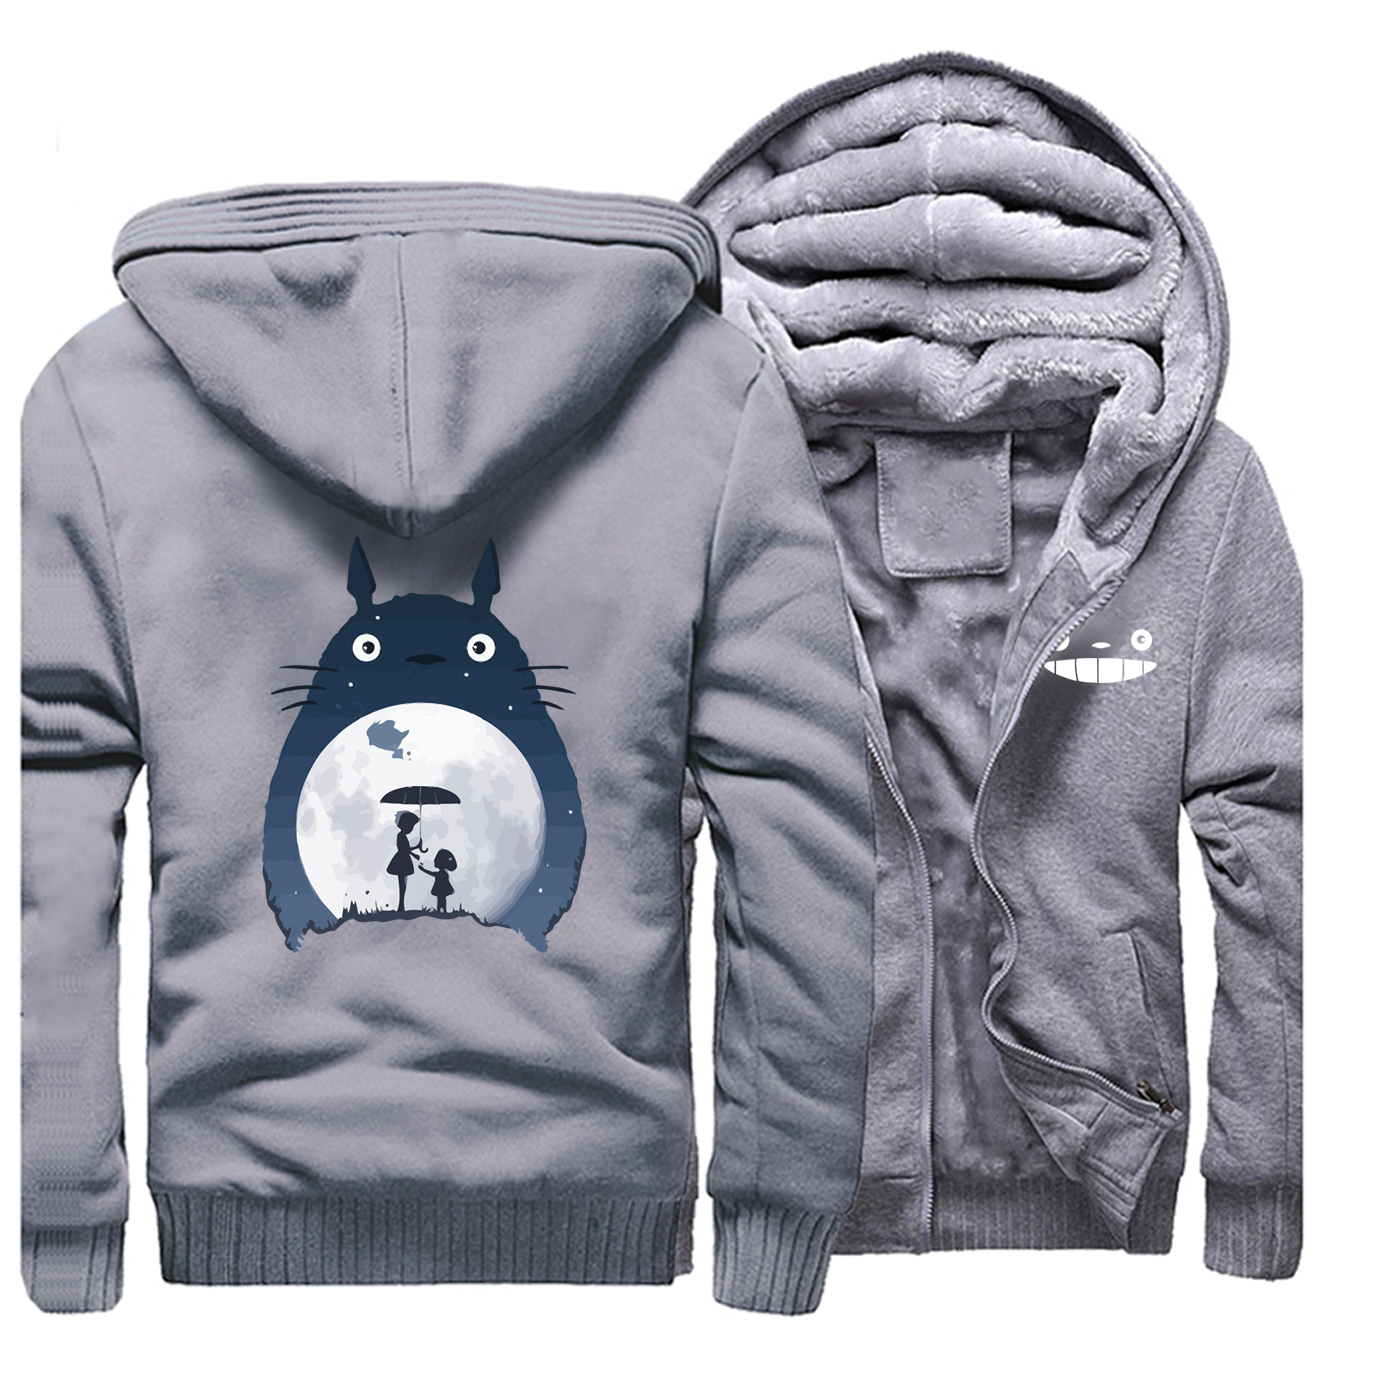 Tonari No Totoro Men Thick Hoodies Sweatshirts Fleece Warm Zipper Coa Vintage Japanese Anime Jacket Streetwear Winter Hoodie-in Hoodies & Sweatshirts from Men's Clothing